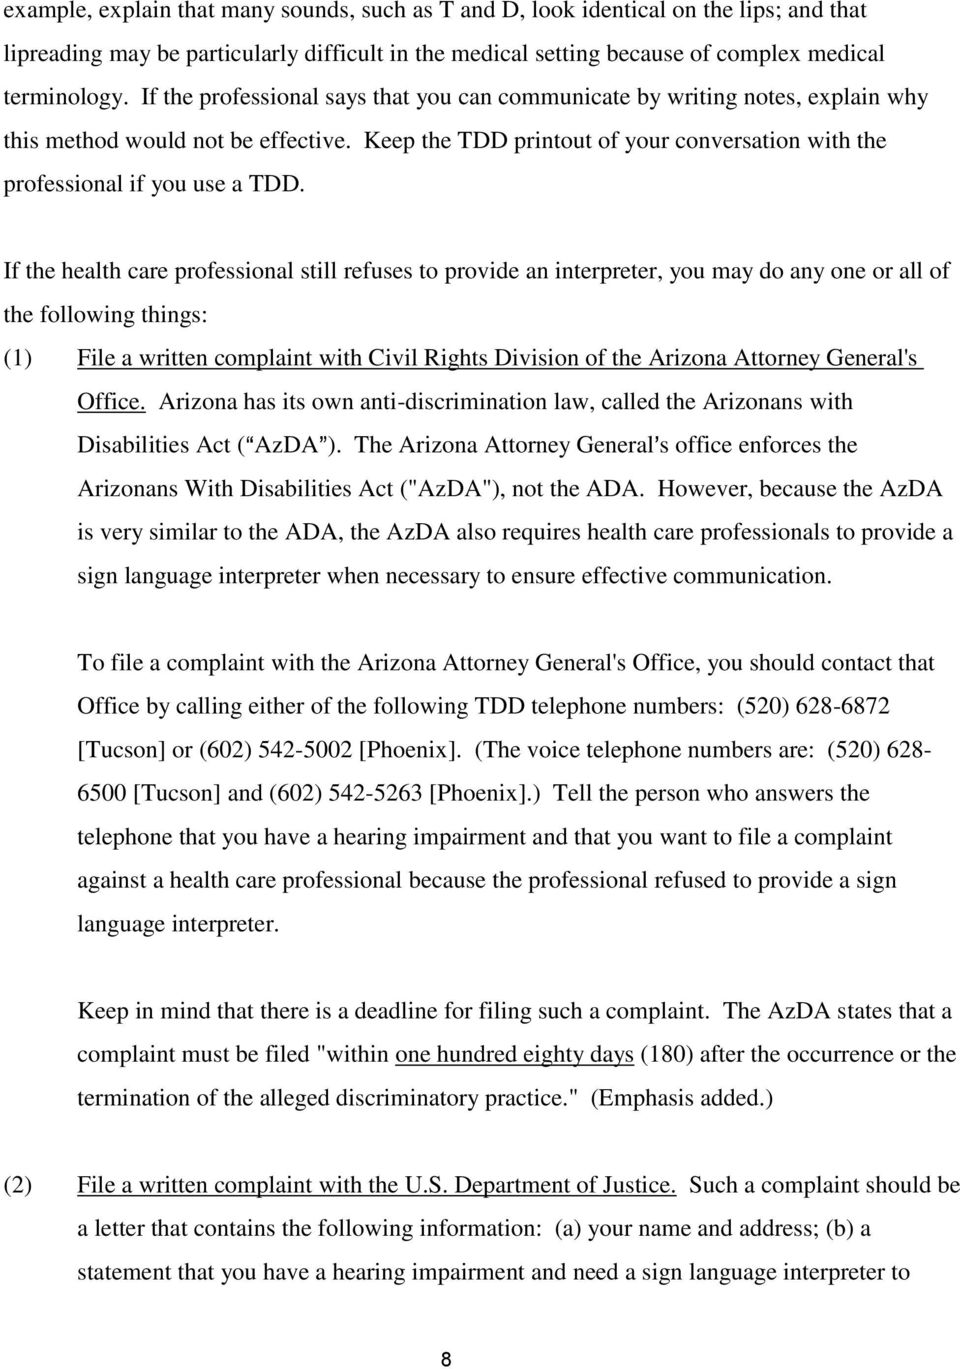 If the health care professional still refuses to provide an interpreter, you may do any one or all of the following things: (1) File a written complaint with Civil Rights Division of the Arizona